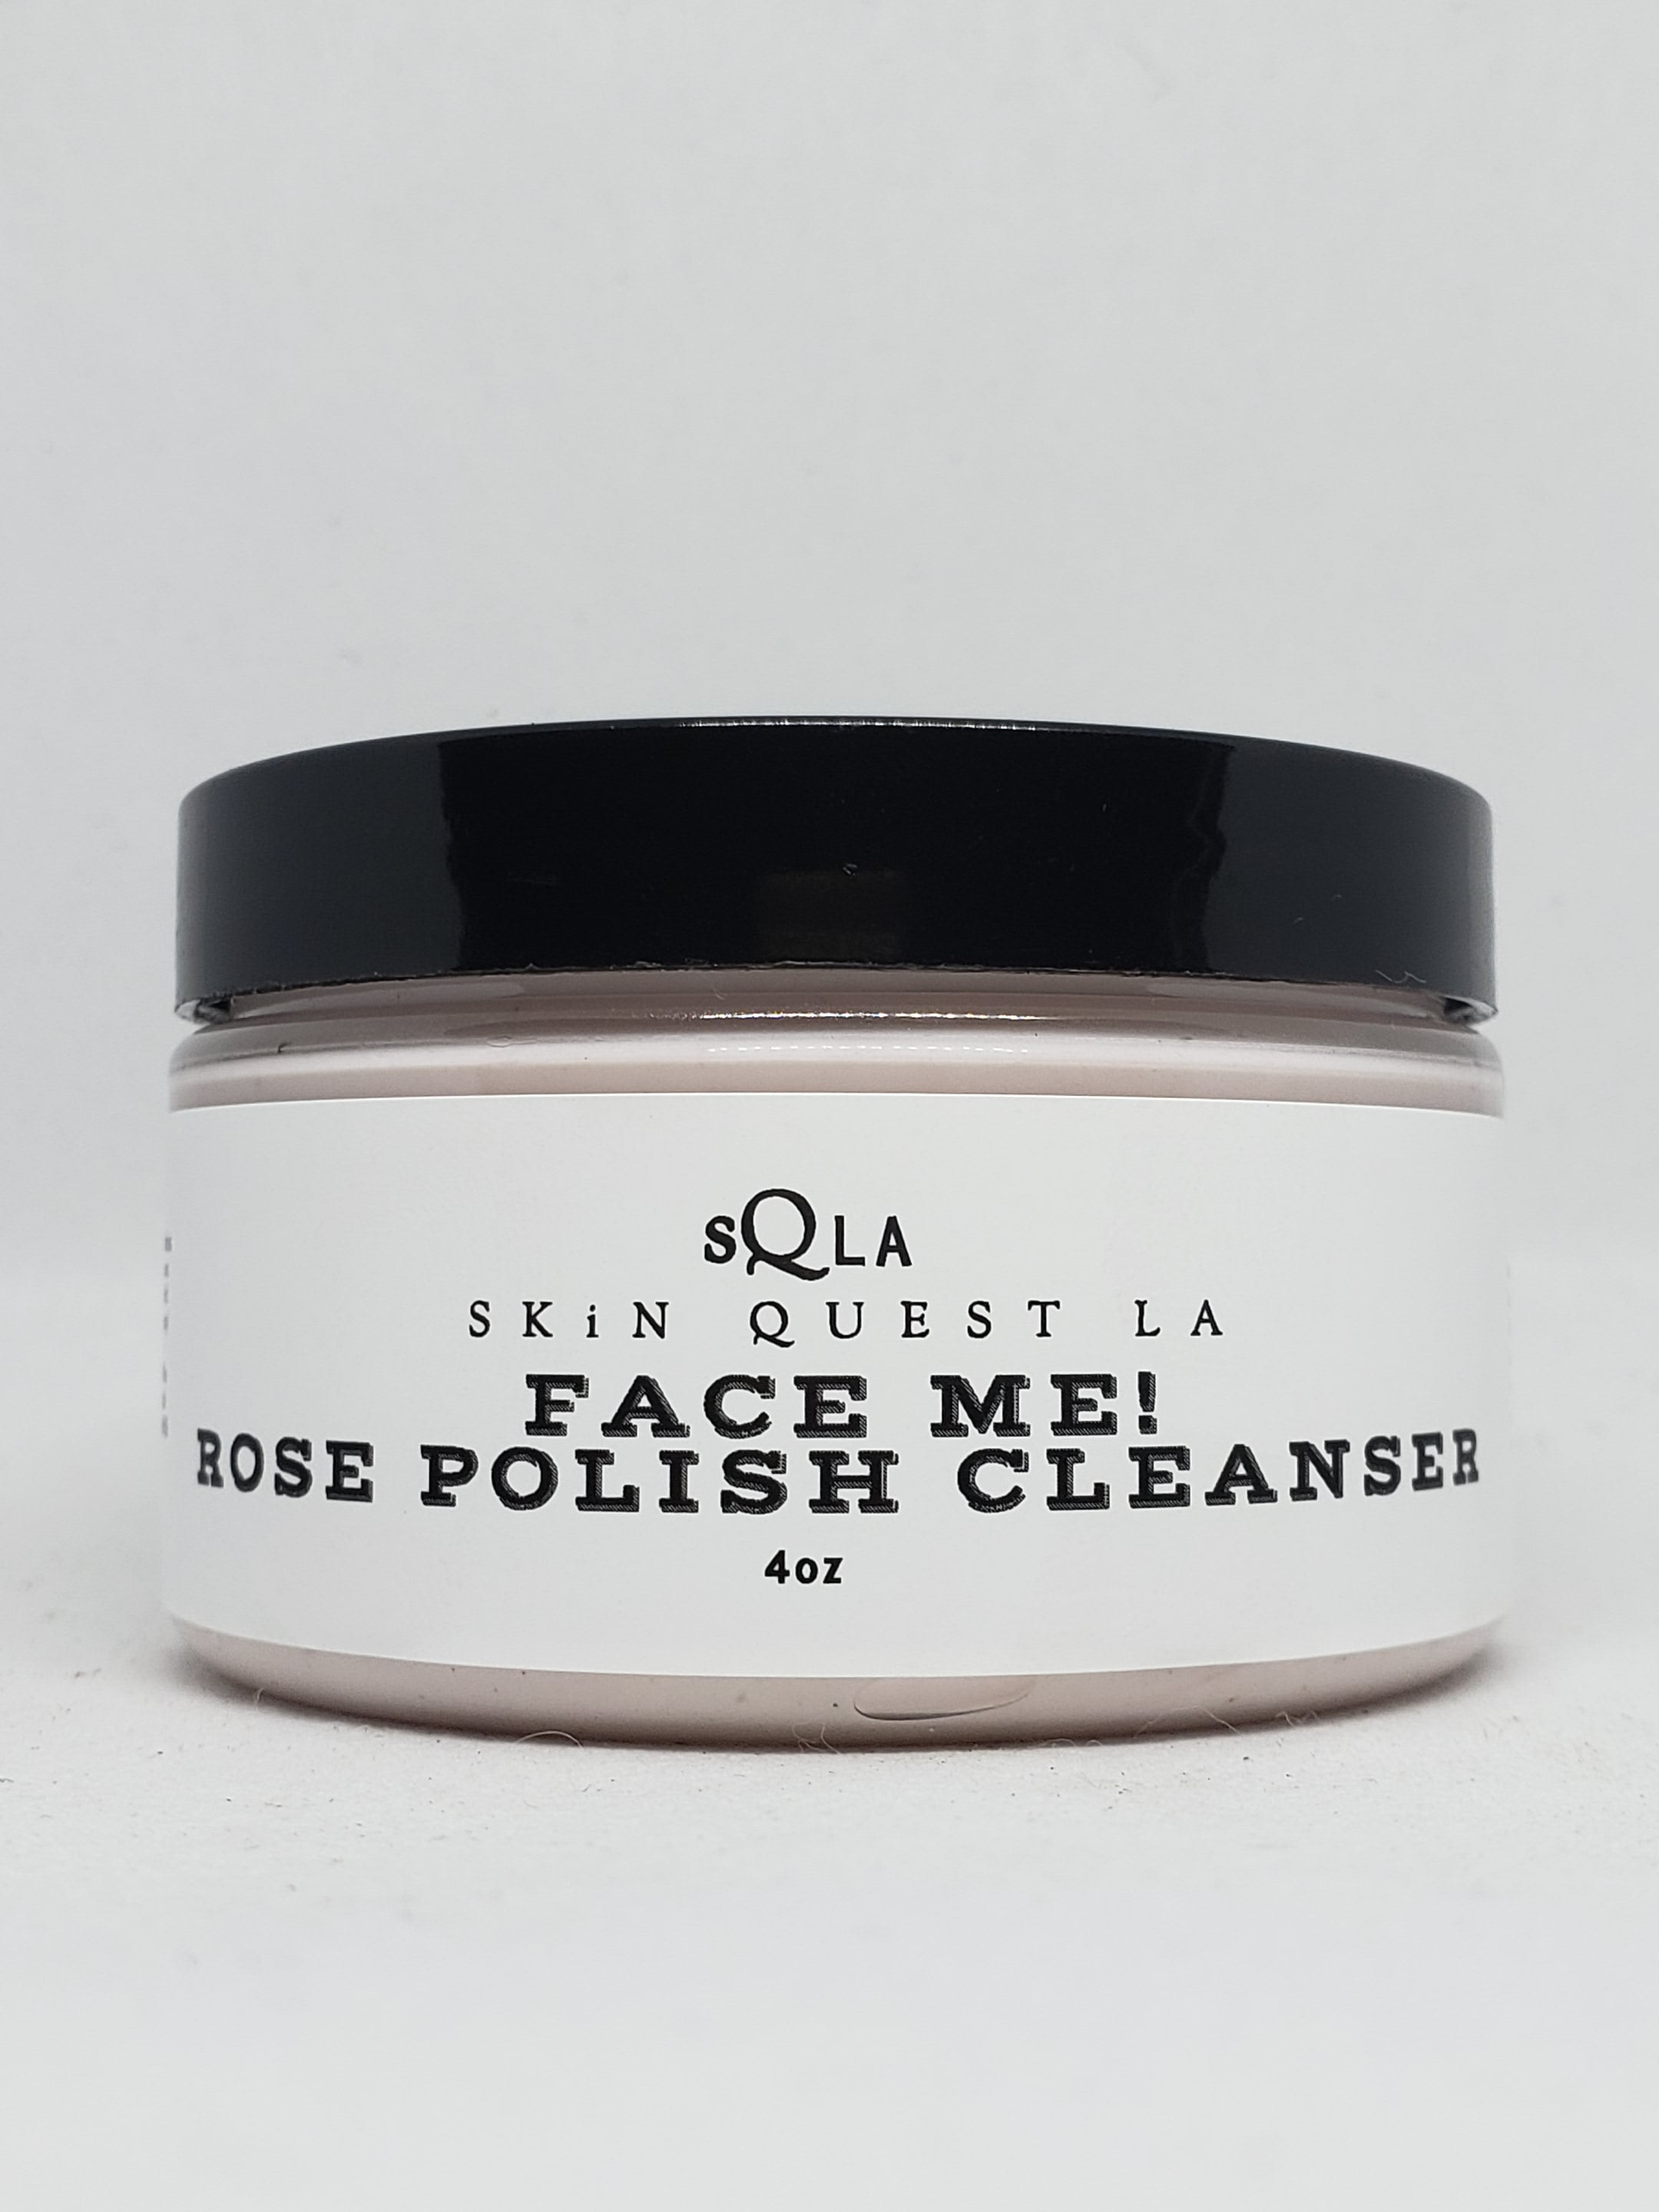 Face Me! Polish Cleanser